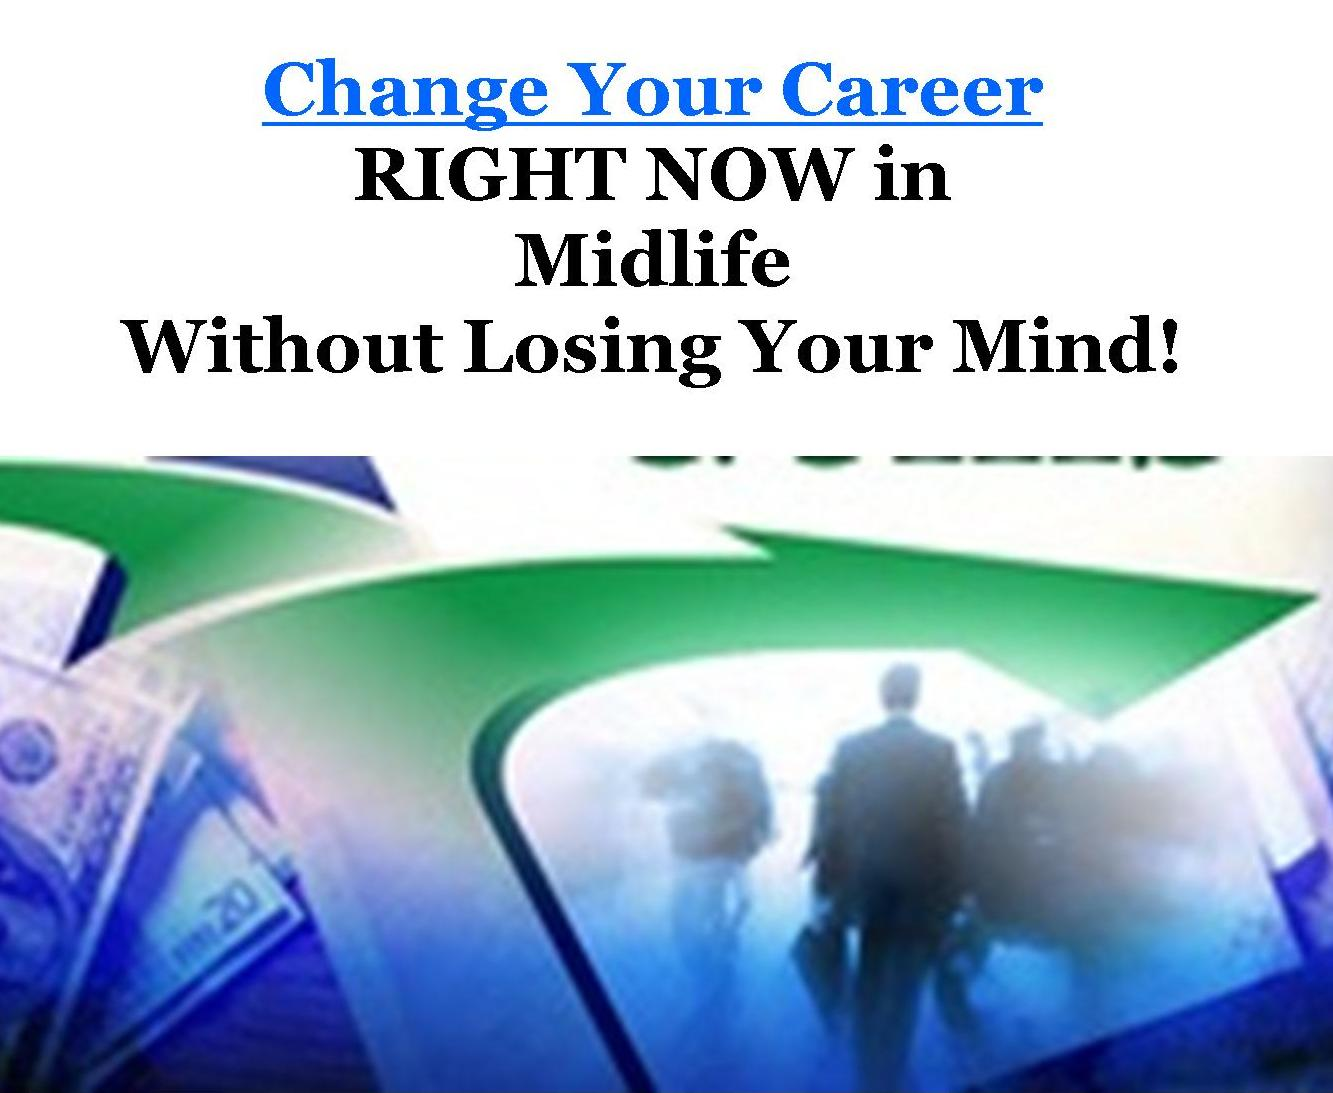 change your career out losing your mind teleseminar series change your career seminarchange your career out losing your mind seminar